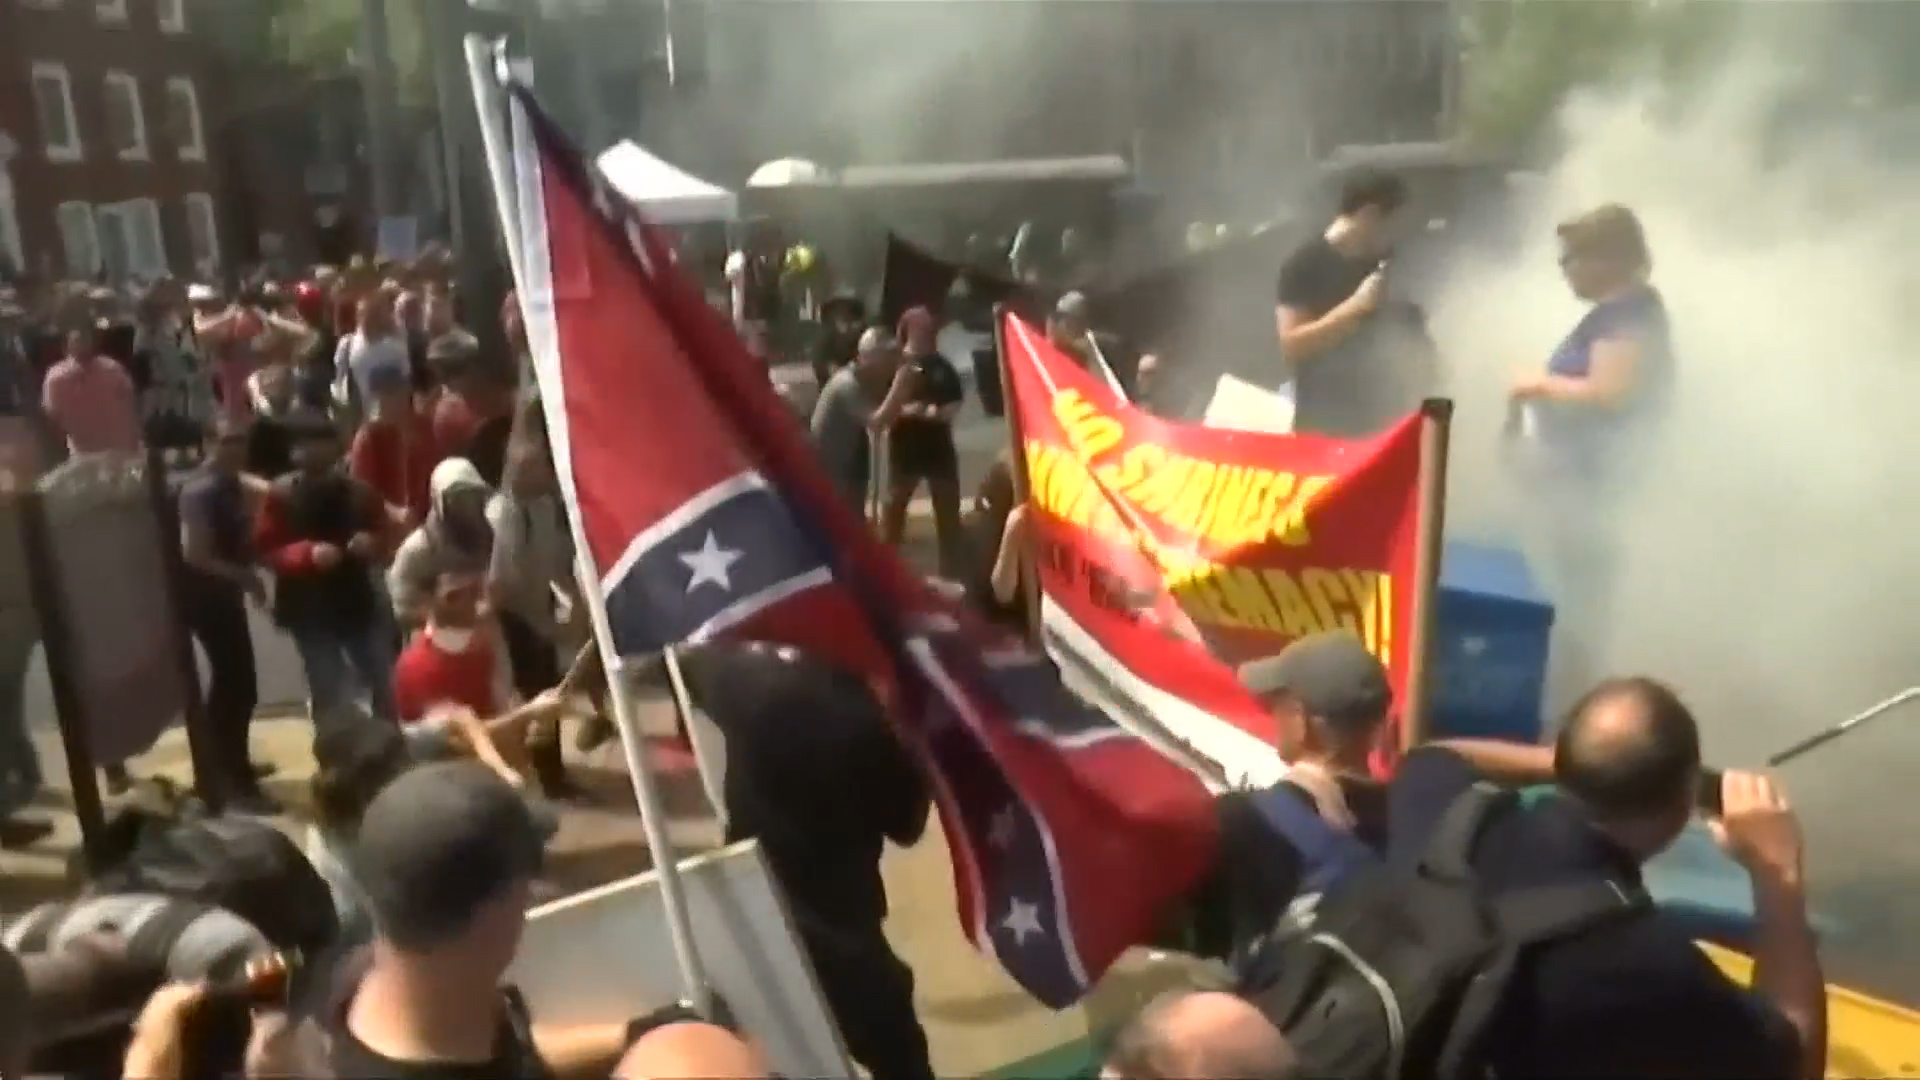 White nationalist James Fields convicted of murdering Heather Heyer in Charlottesville, Virginia